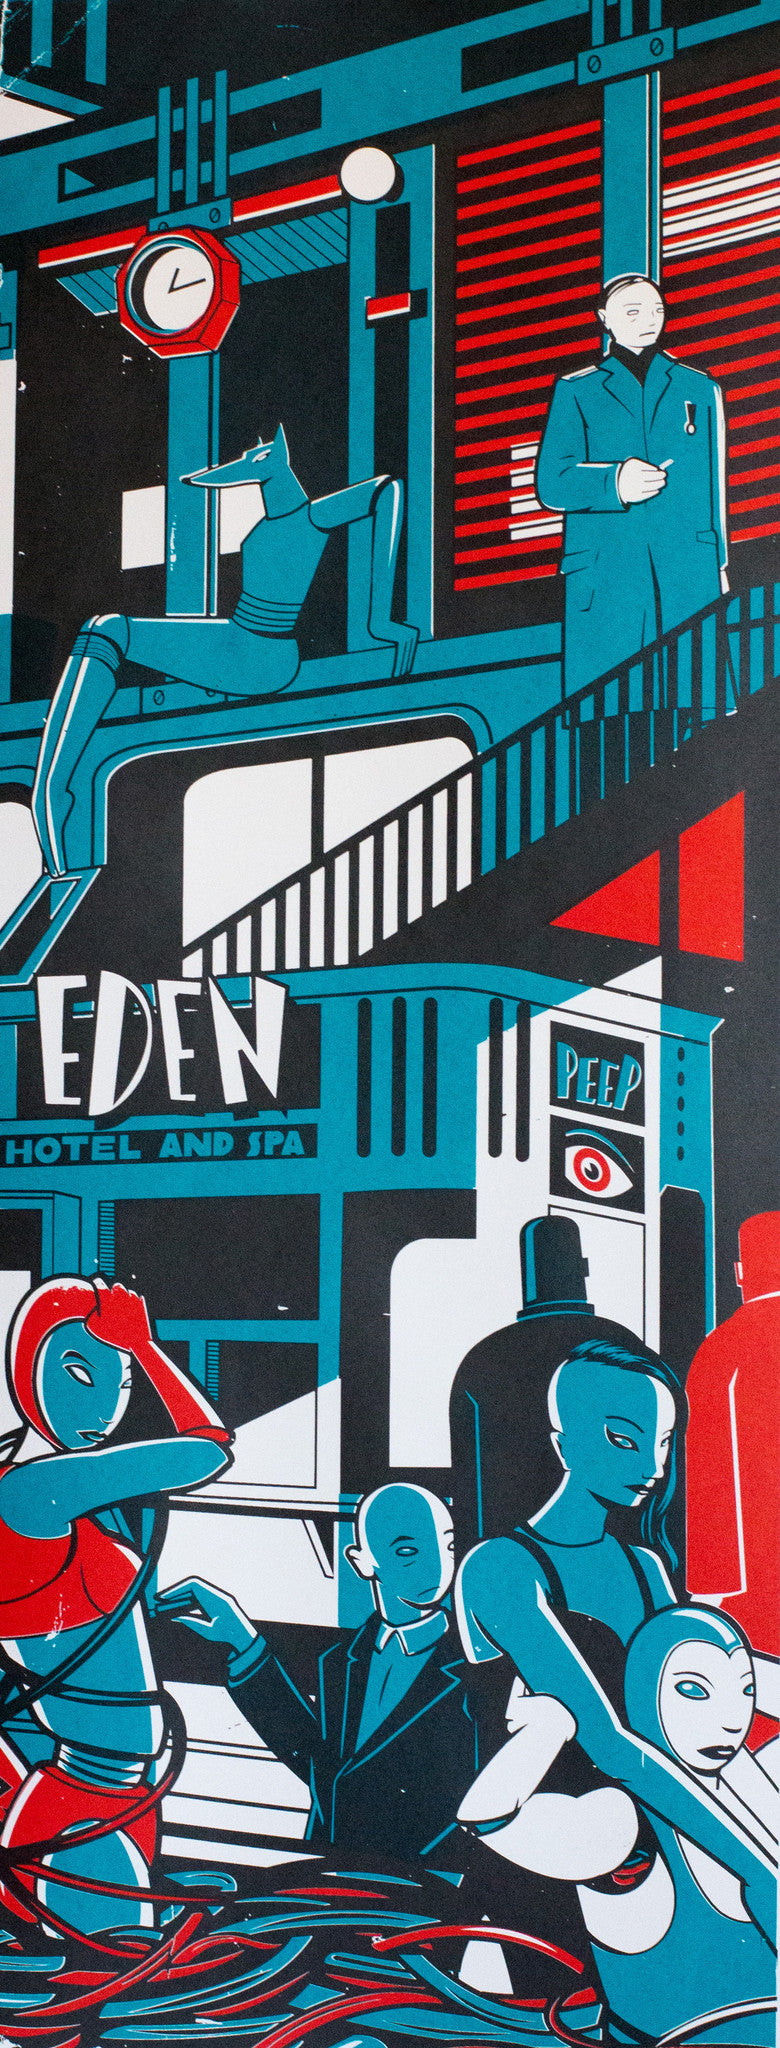 HOTEL EDEN PRINT BY ANDRÁS BARANYAI LIMITED EDITION NUMBERED AND SIGNED GRAPHICS PRINTA HAND-MADE WATER-BASED SILKSCREEN PRINT ON RECYCLED PAPER